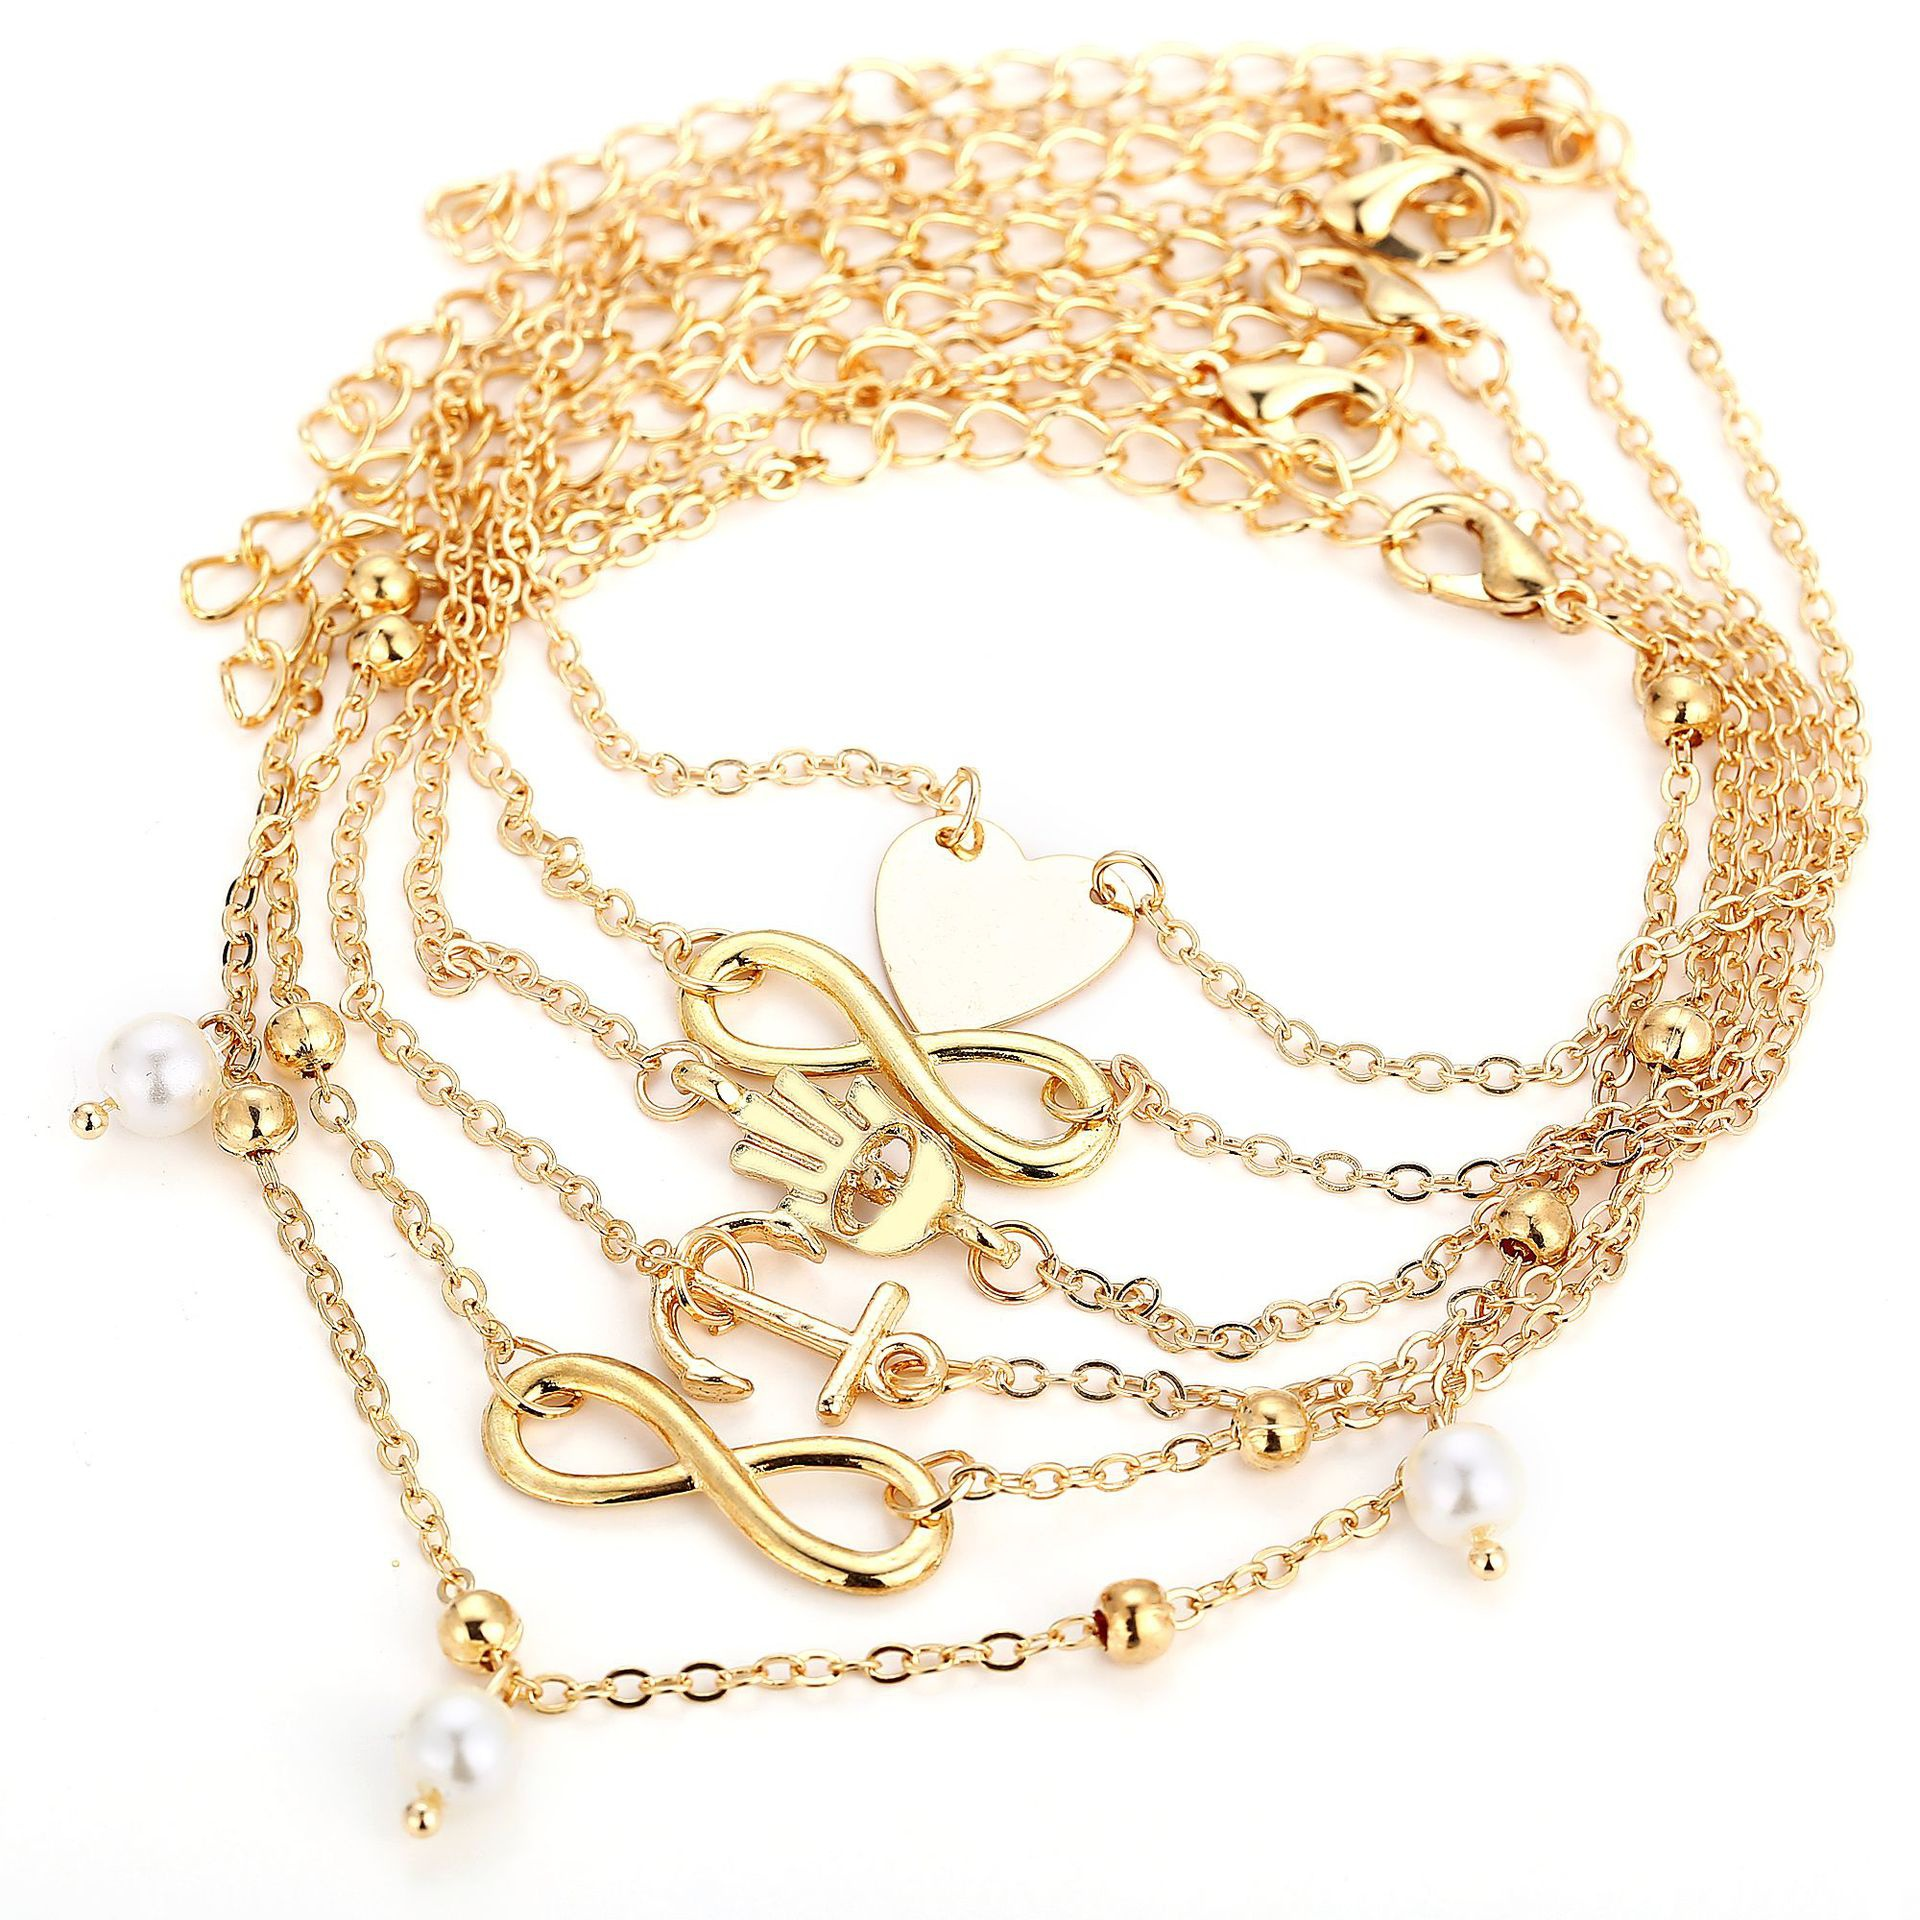 Seaside Beach Anklet Multilayer Ankle Bracelet Alloy Foot Chain Women Fashion Accessories